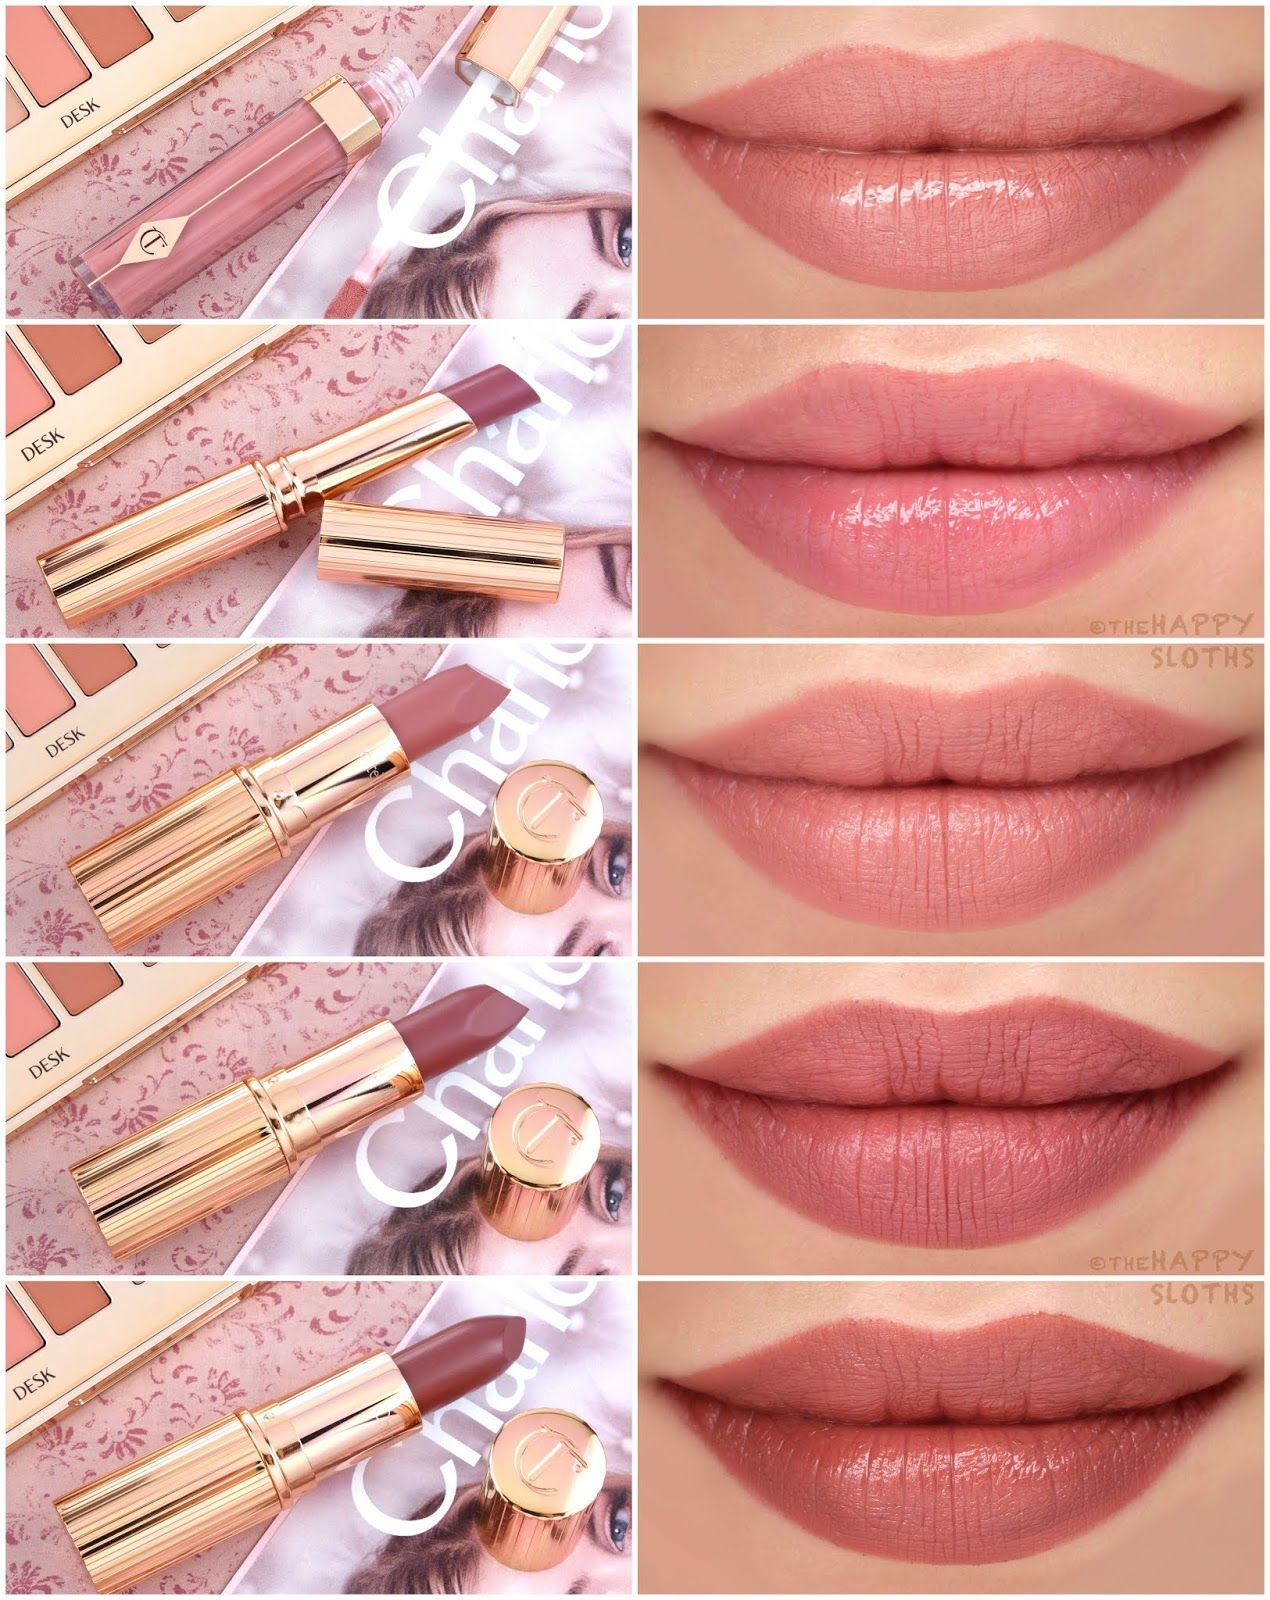 Charlotte Tilbury New Pillow Talk Collection Review And Swatches Part Ii Pillow Talk Lipstick Intense Lipstick Makeup Reviews